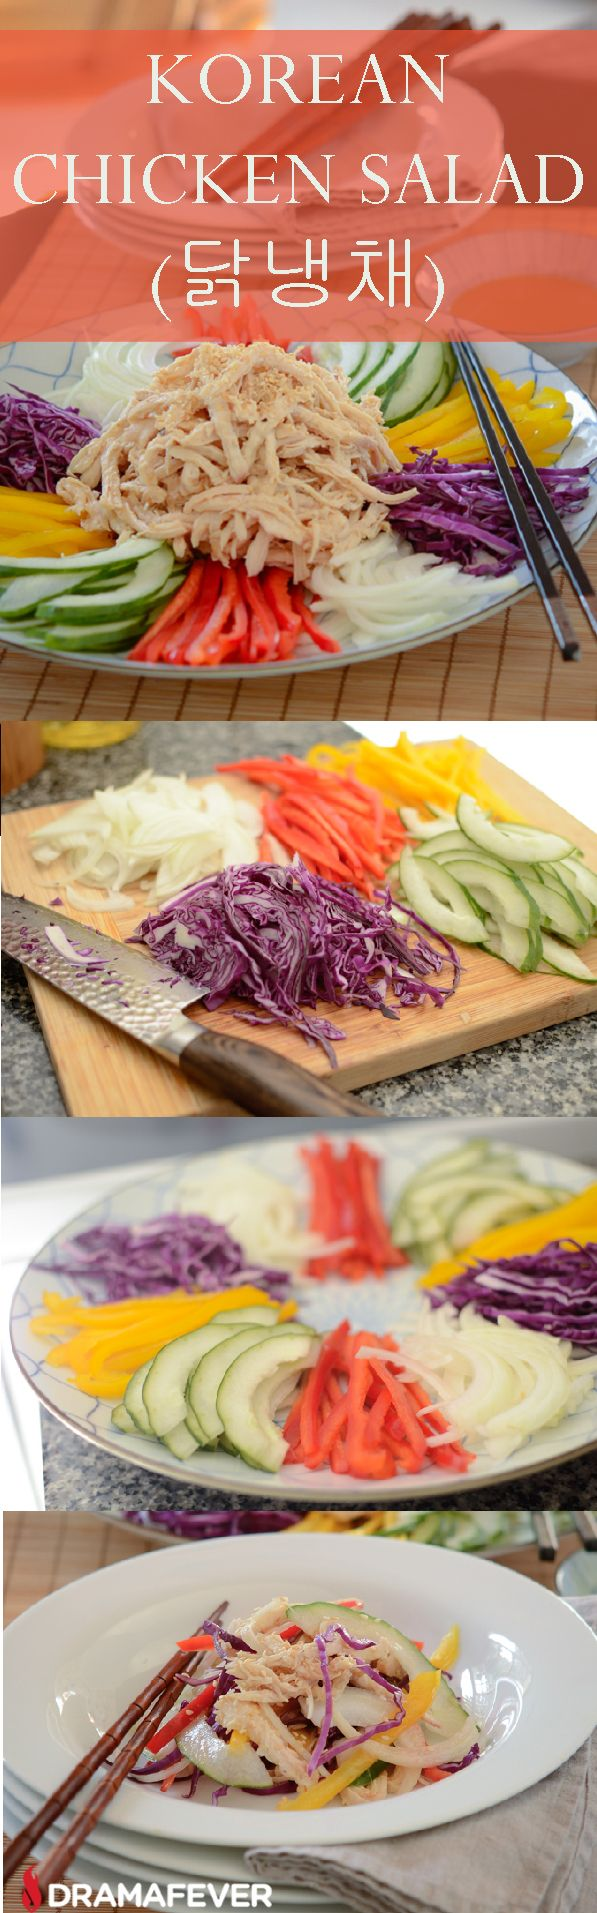 Koreans have a chicken salad called Dak-nangchae (닭 냉채). This is a great low-carb, low-calorie, low-fat salad that is full in flavor. Hope you enjoy!